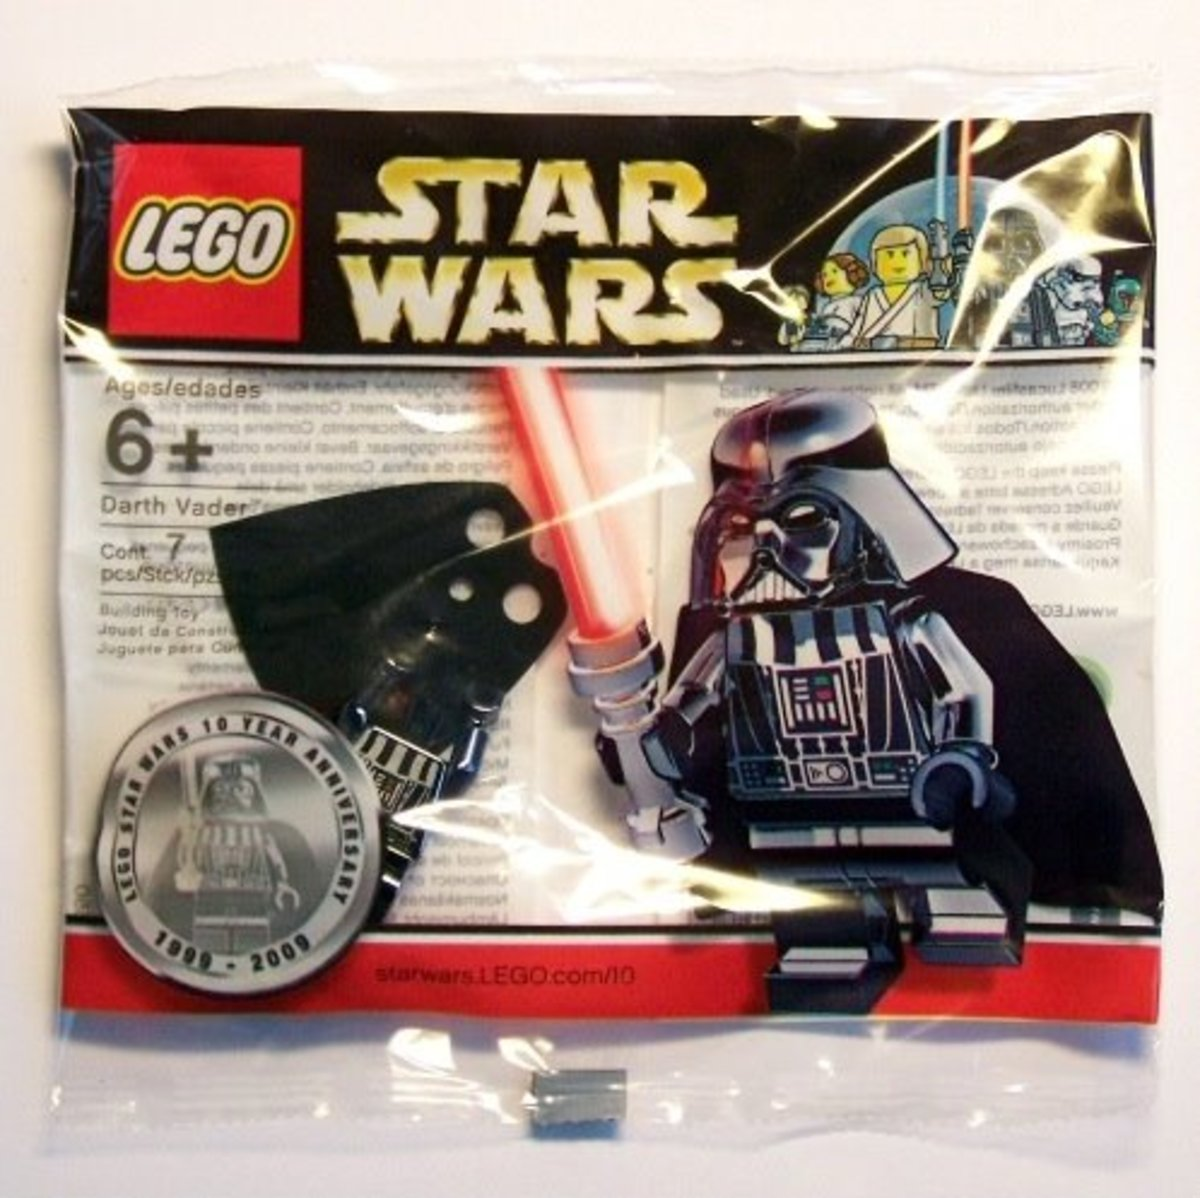 Lego Star Wars Darth Vader Chrome 4547551 Bag